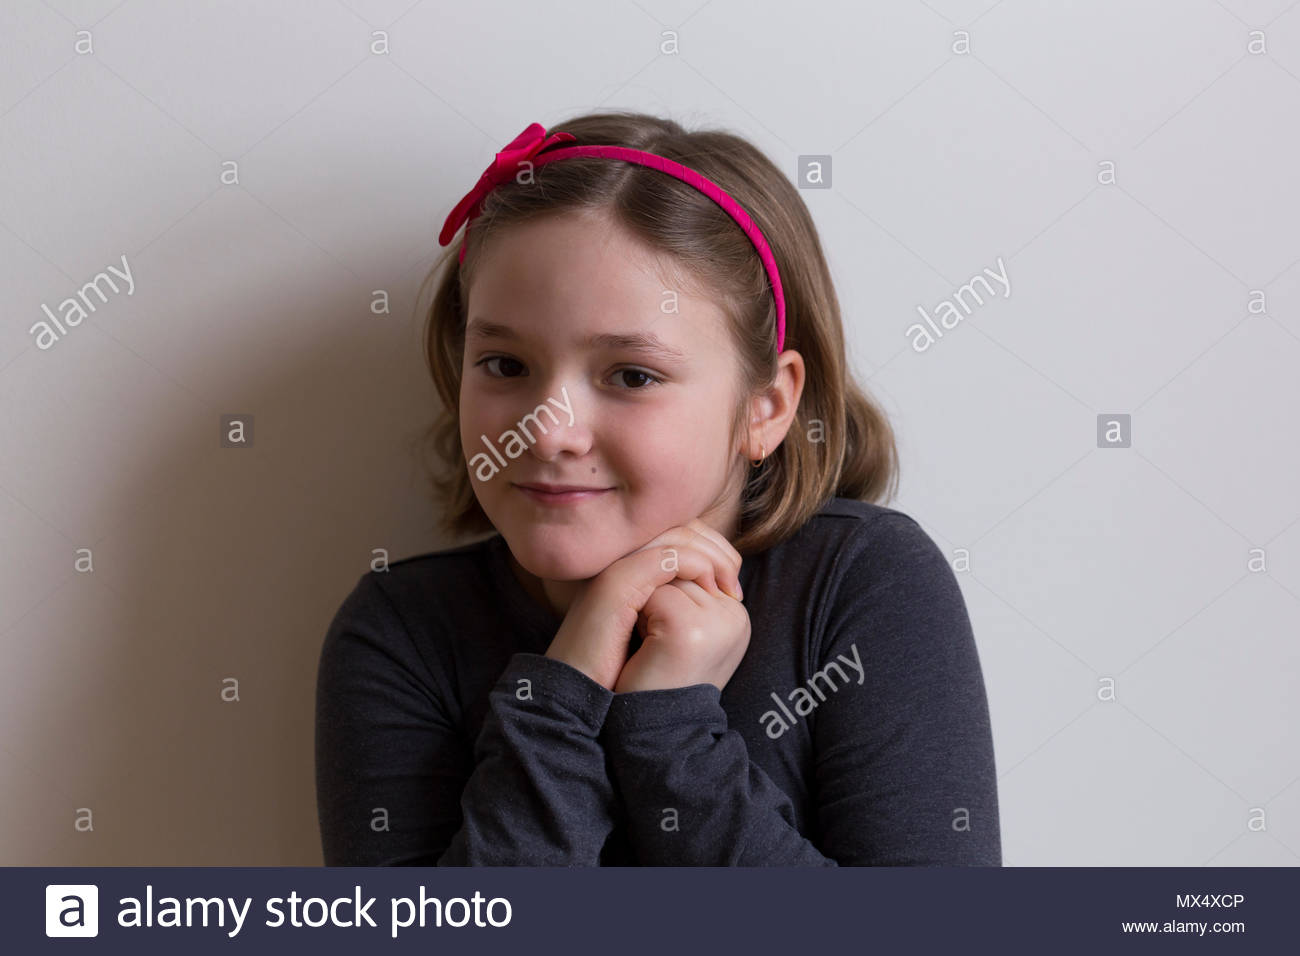 Closeup Of Pretty Smiling Eight Year Old Little Girl With Bob Short